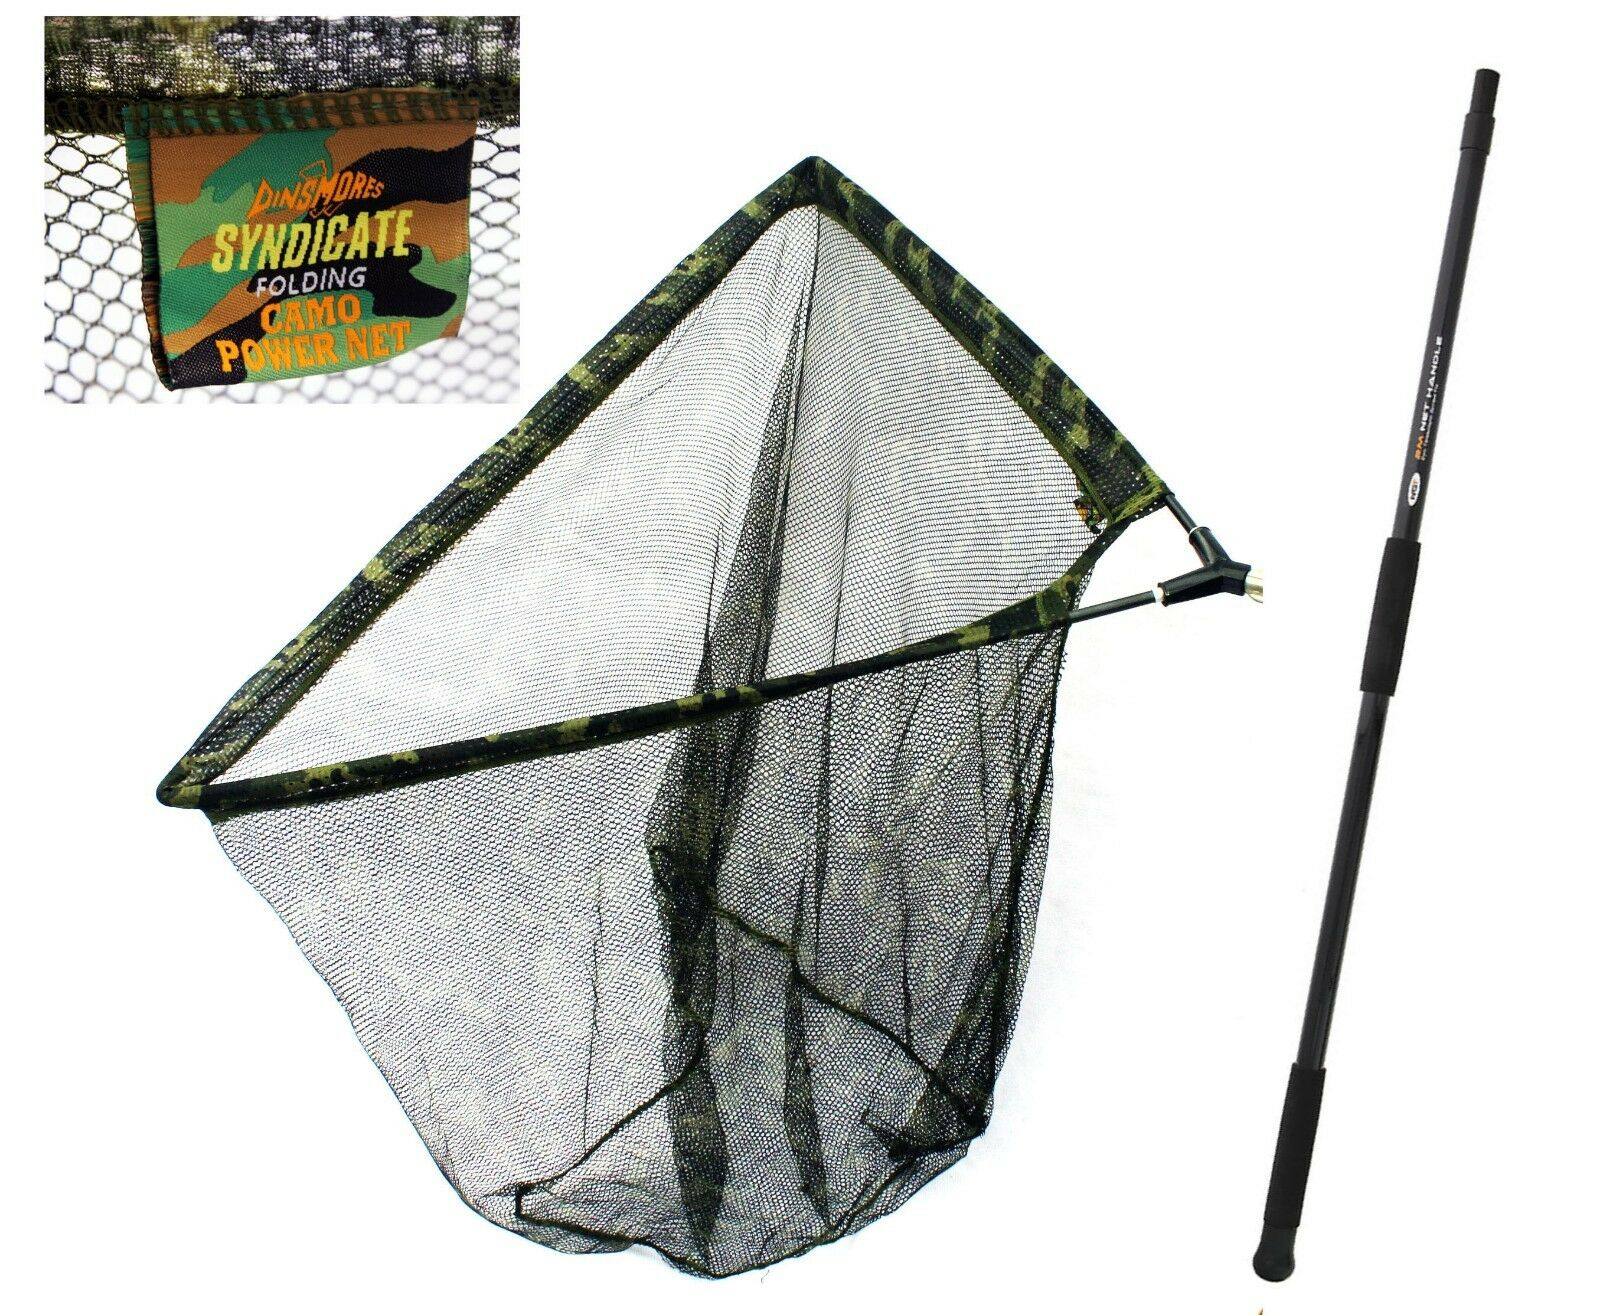 Dinsmores Camo specimen   Carp net with 6ft Handle Available in 3 sizes